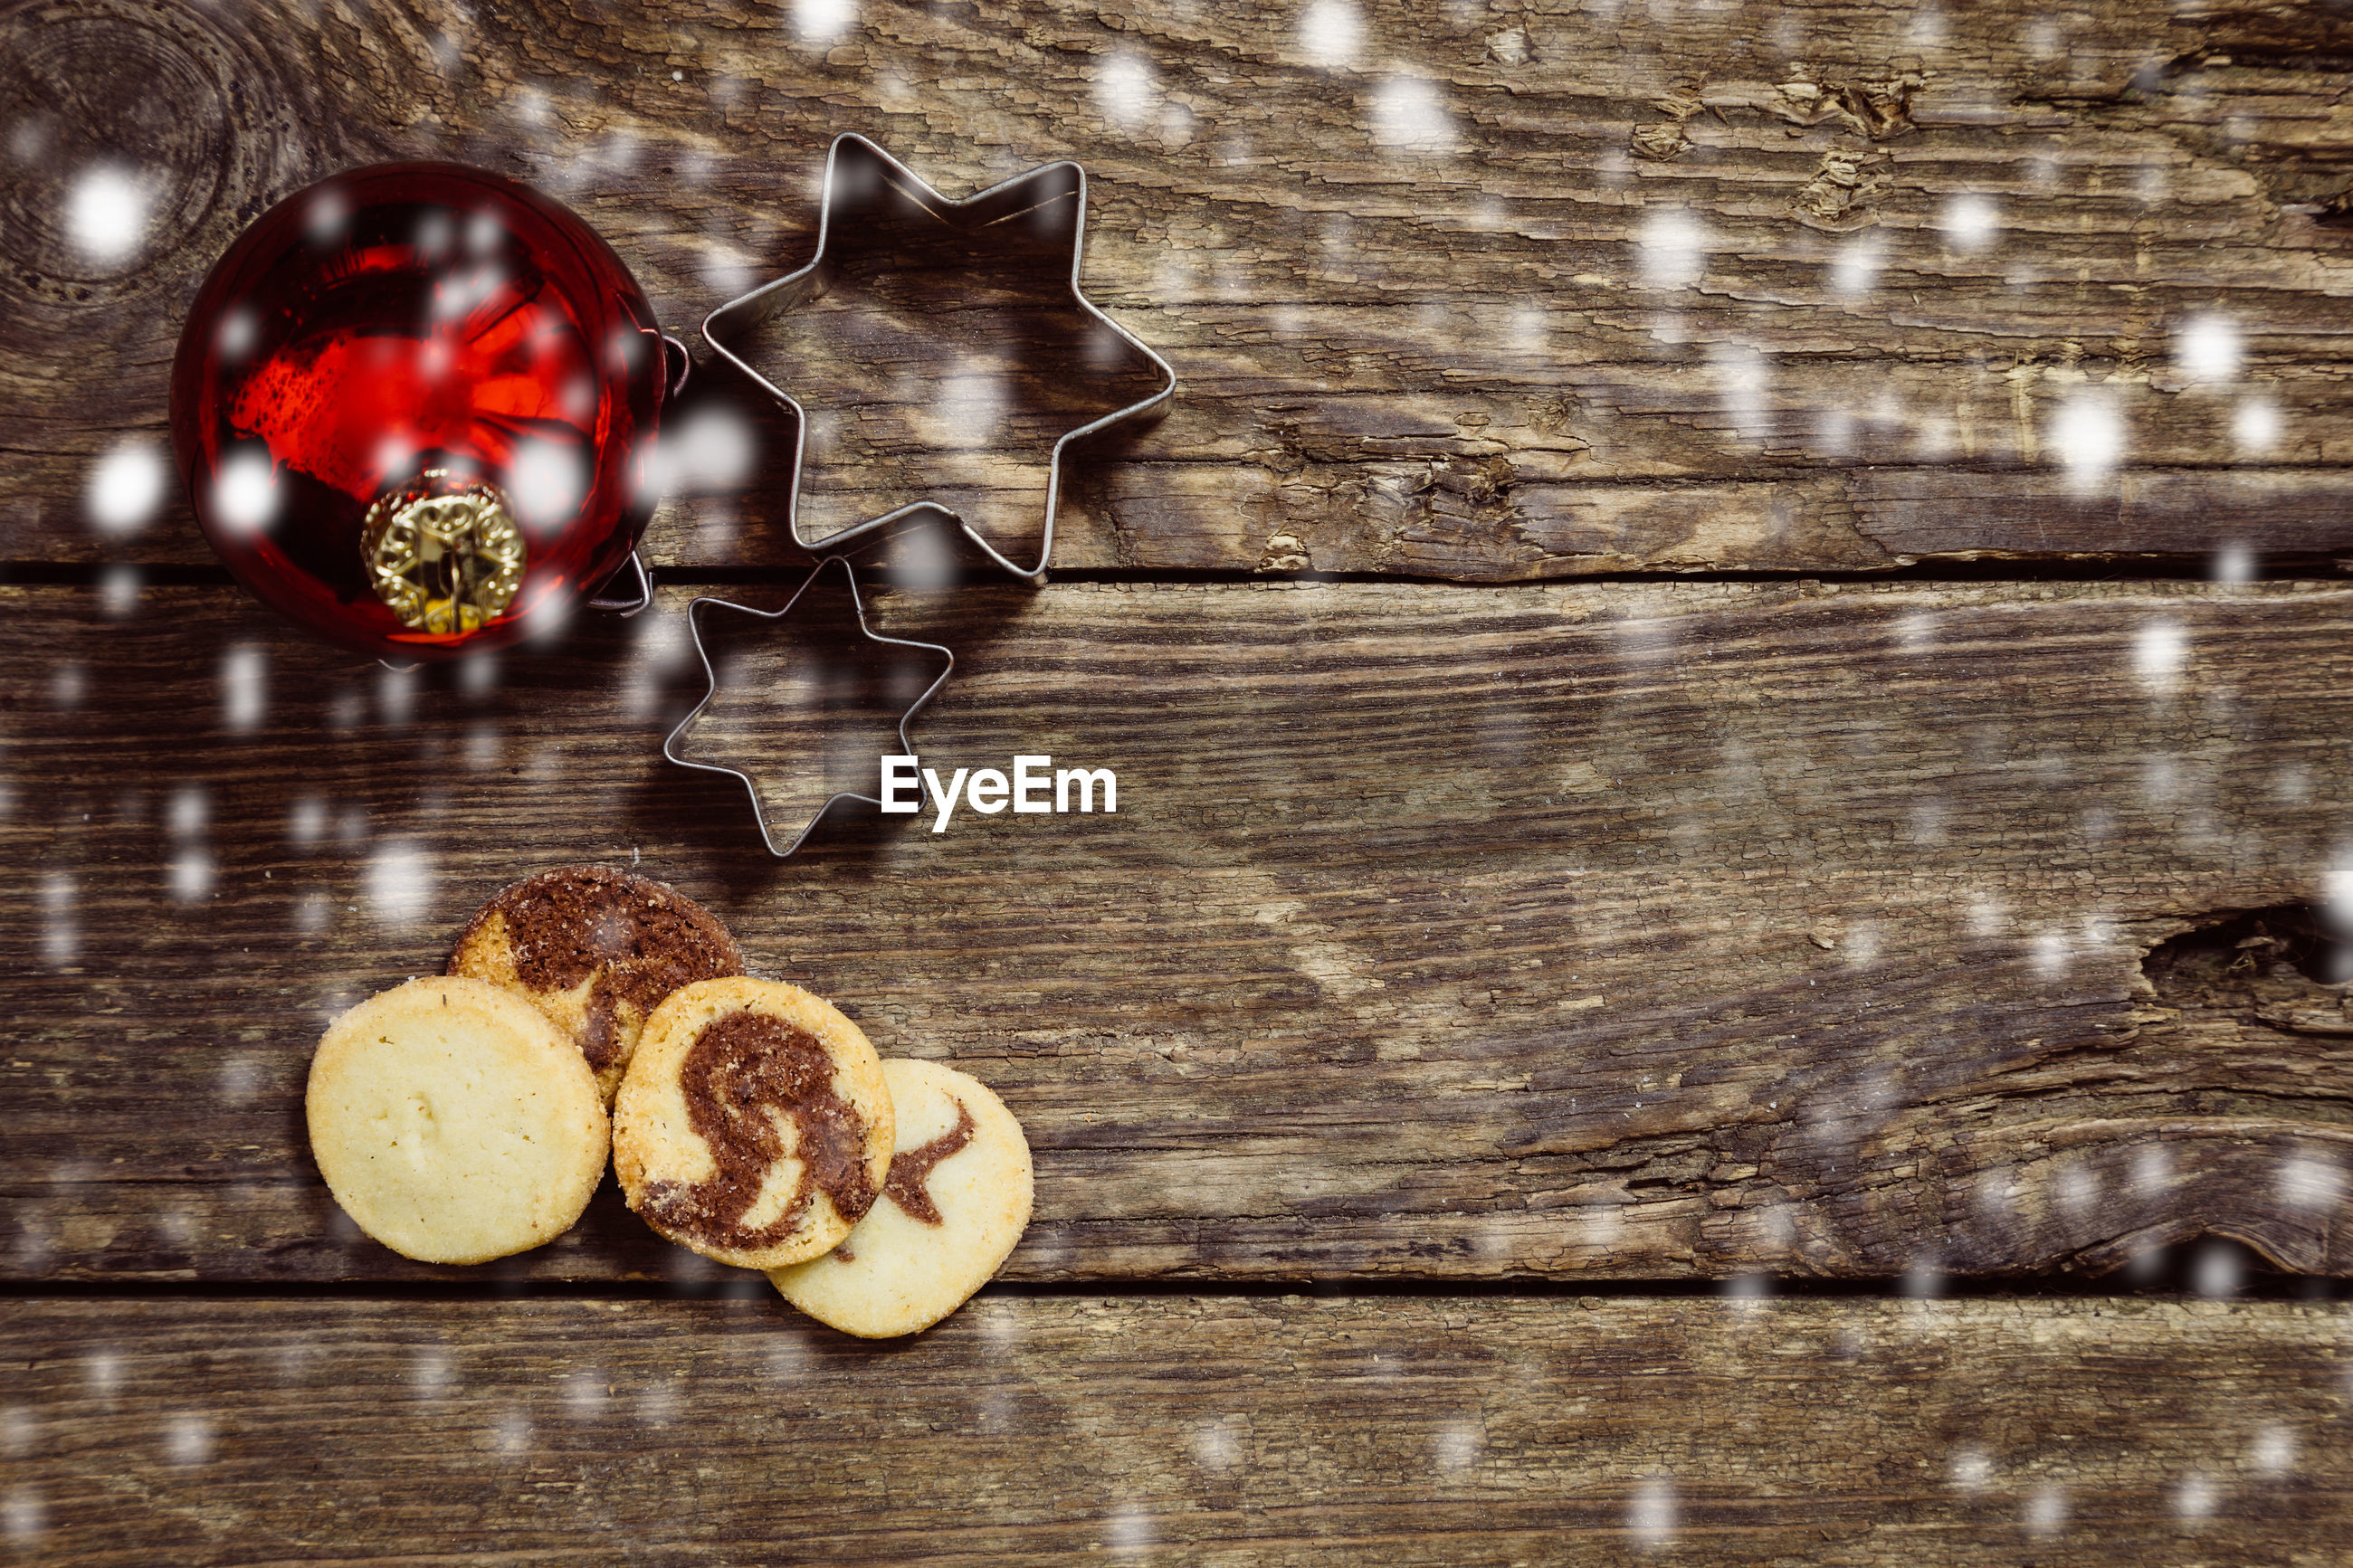 table, wood - material, indoors, food, no people, food and drink, still life, baked, freshness, directly above, close-up, healthy eating, fruit, cookie, wood, christmas, high angle view, day, wellbeing, sweet, crockery